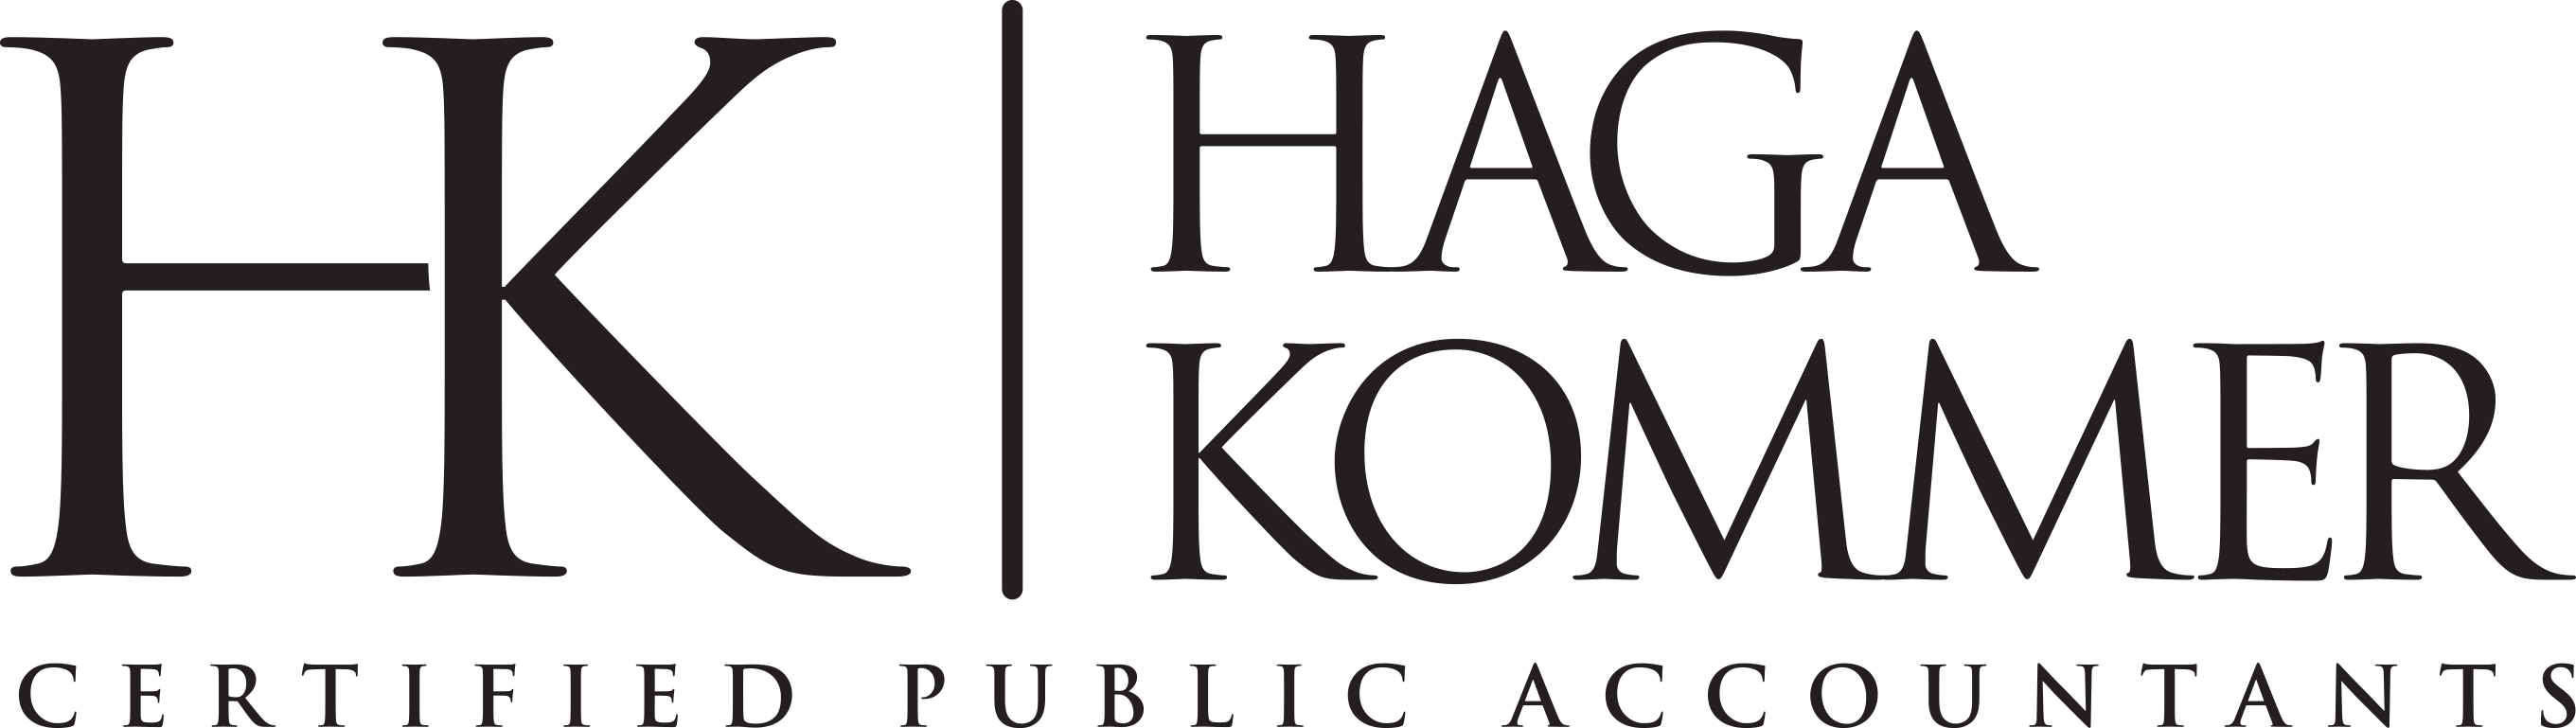 North Dakota CPA Firm | Previous Newsletters Page | Haga Kommer, Ltd.